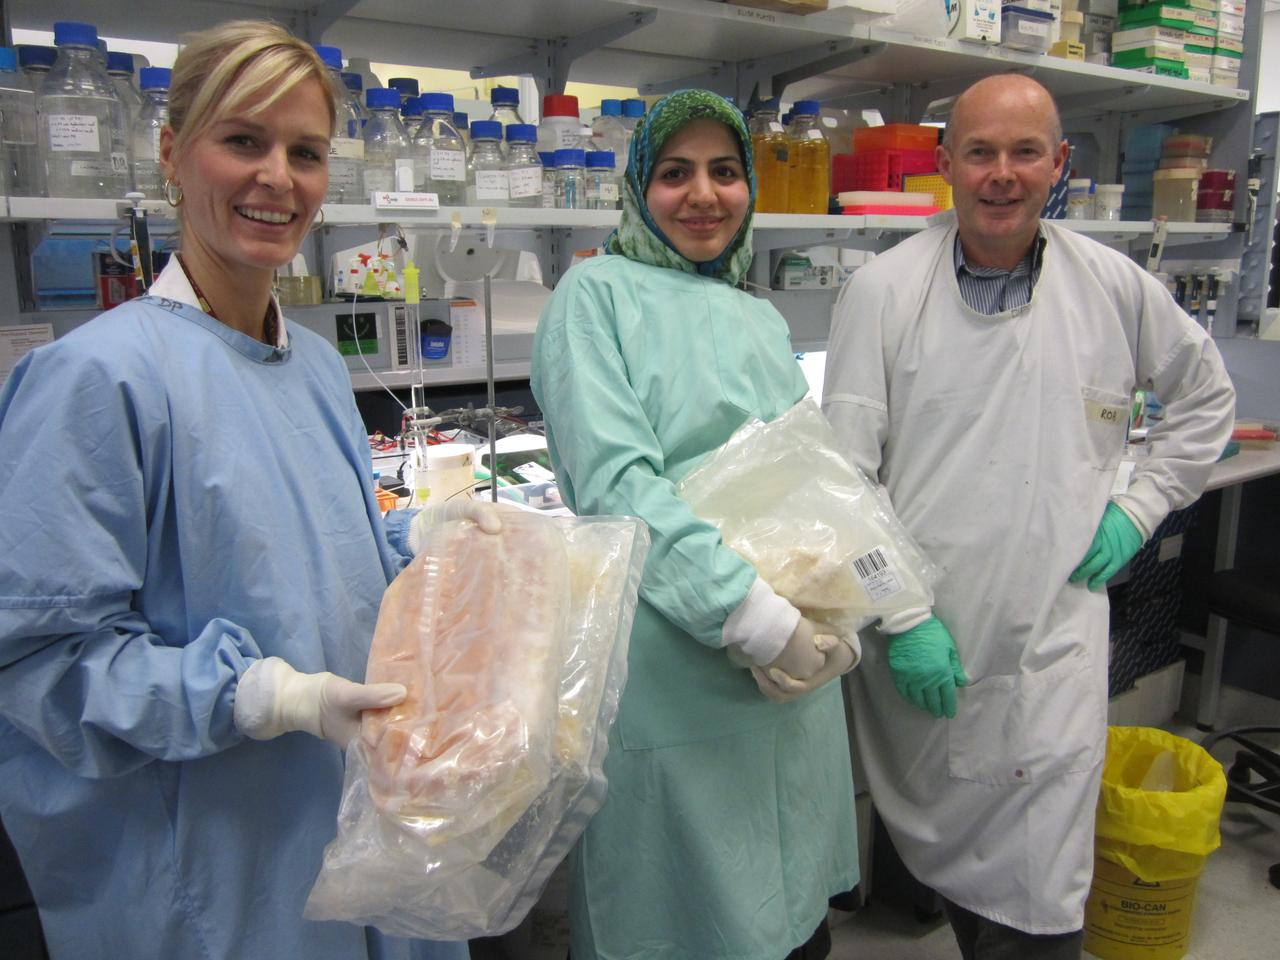 Dr. Marit Kramski (left) and colleagues Behnaz Heydarchi and Rob Center, with bags of frozen HIV-fighting milk (Photo: Fresh Science)